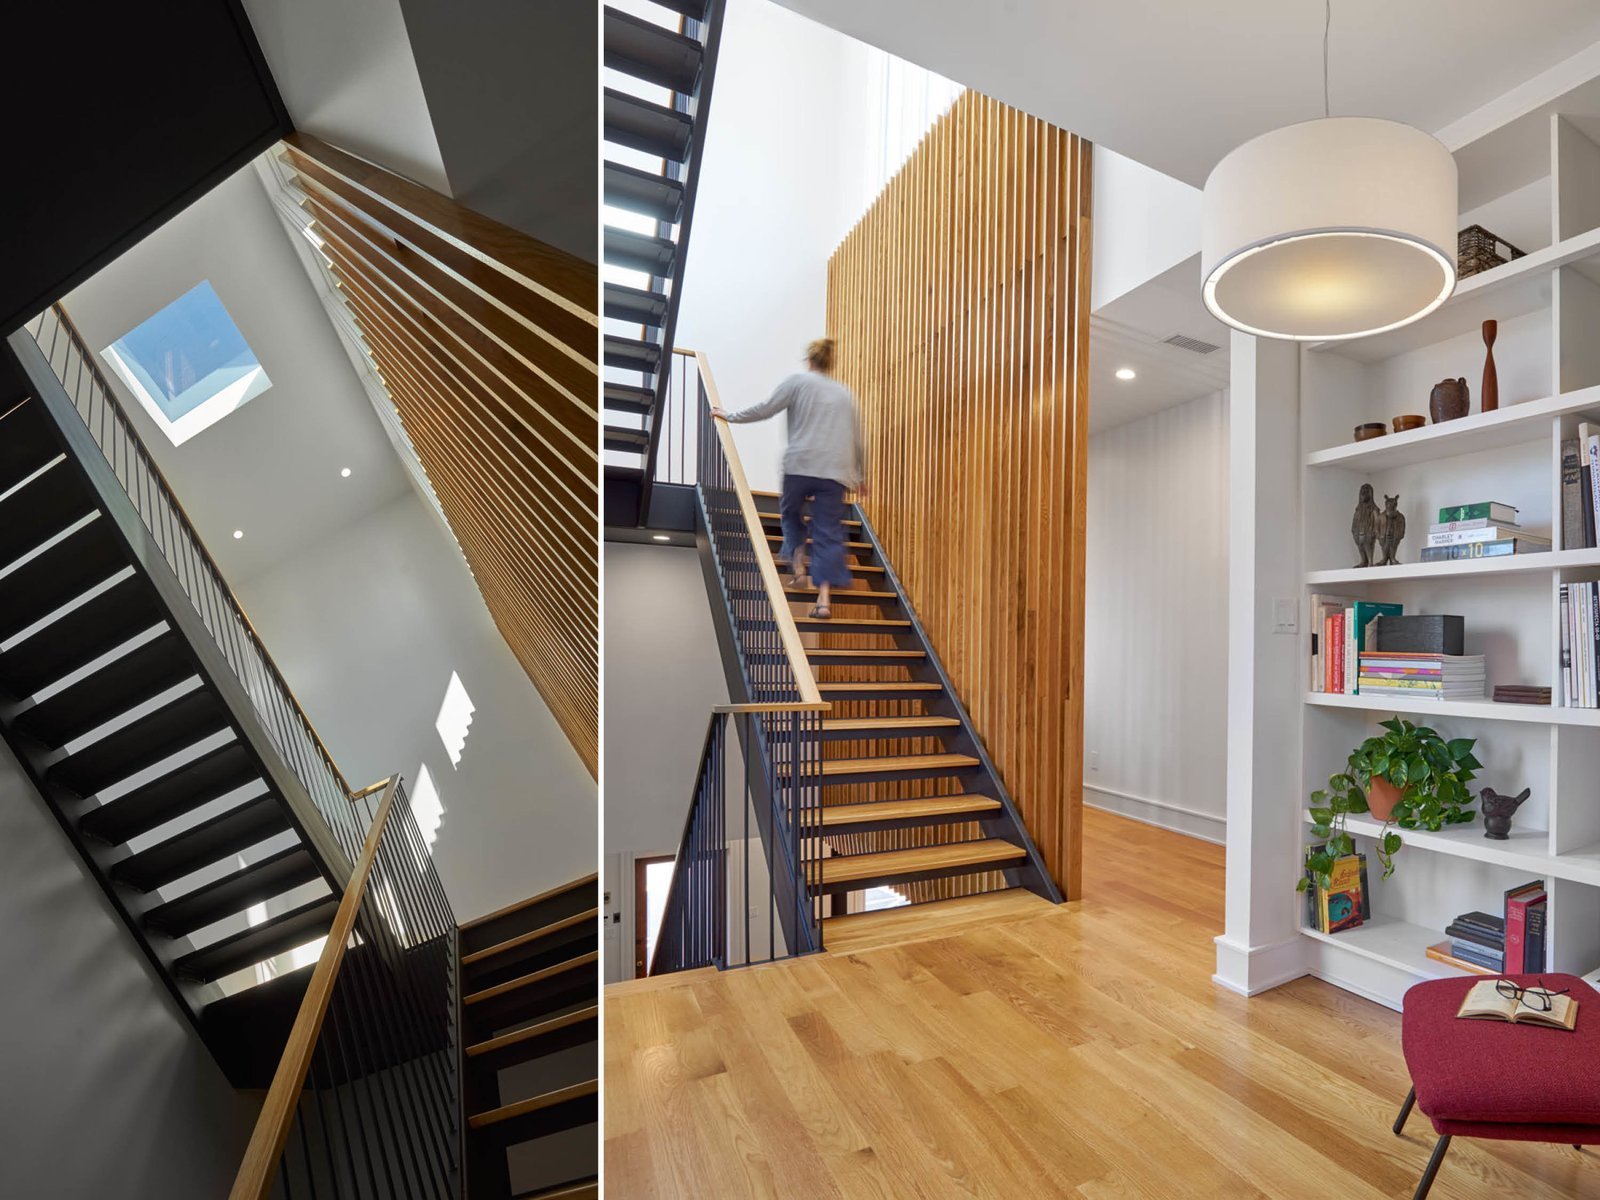 Staircase, Wood Tread, Metal Tread, Wood Railing, and Metal Railing Reading nook + Stairwell  The Historic Ely Building